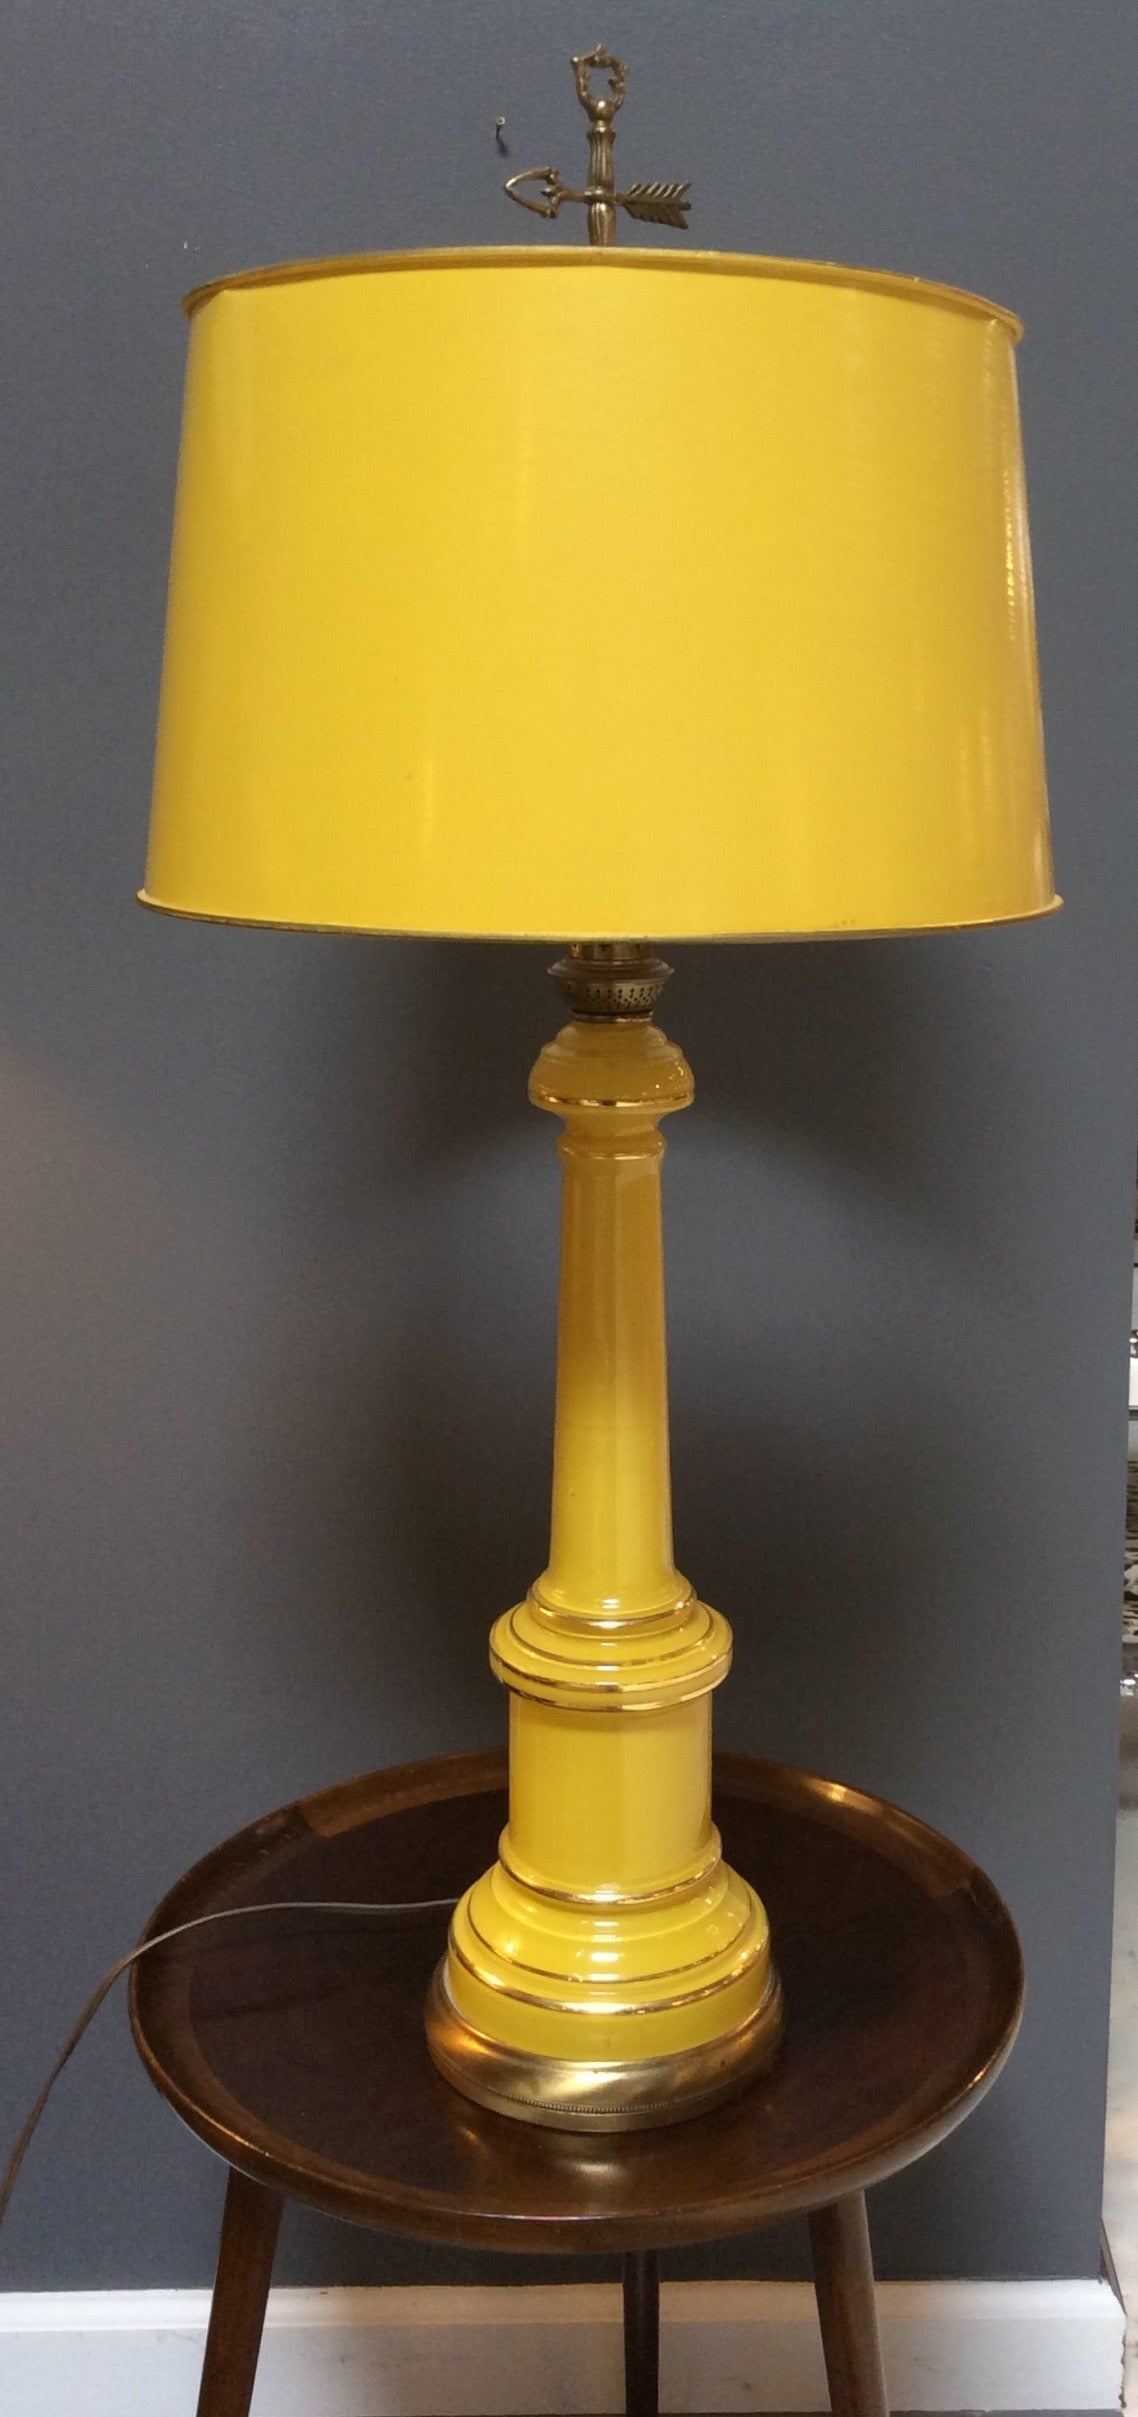 Mid century pair of yellow opaline table lamps by warren kessler empire mid century pair of yellow opaline table lamps by warren kessler nyc for sale aloadofball